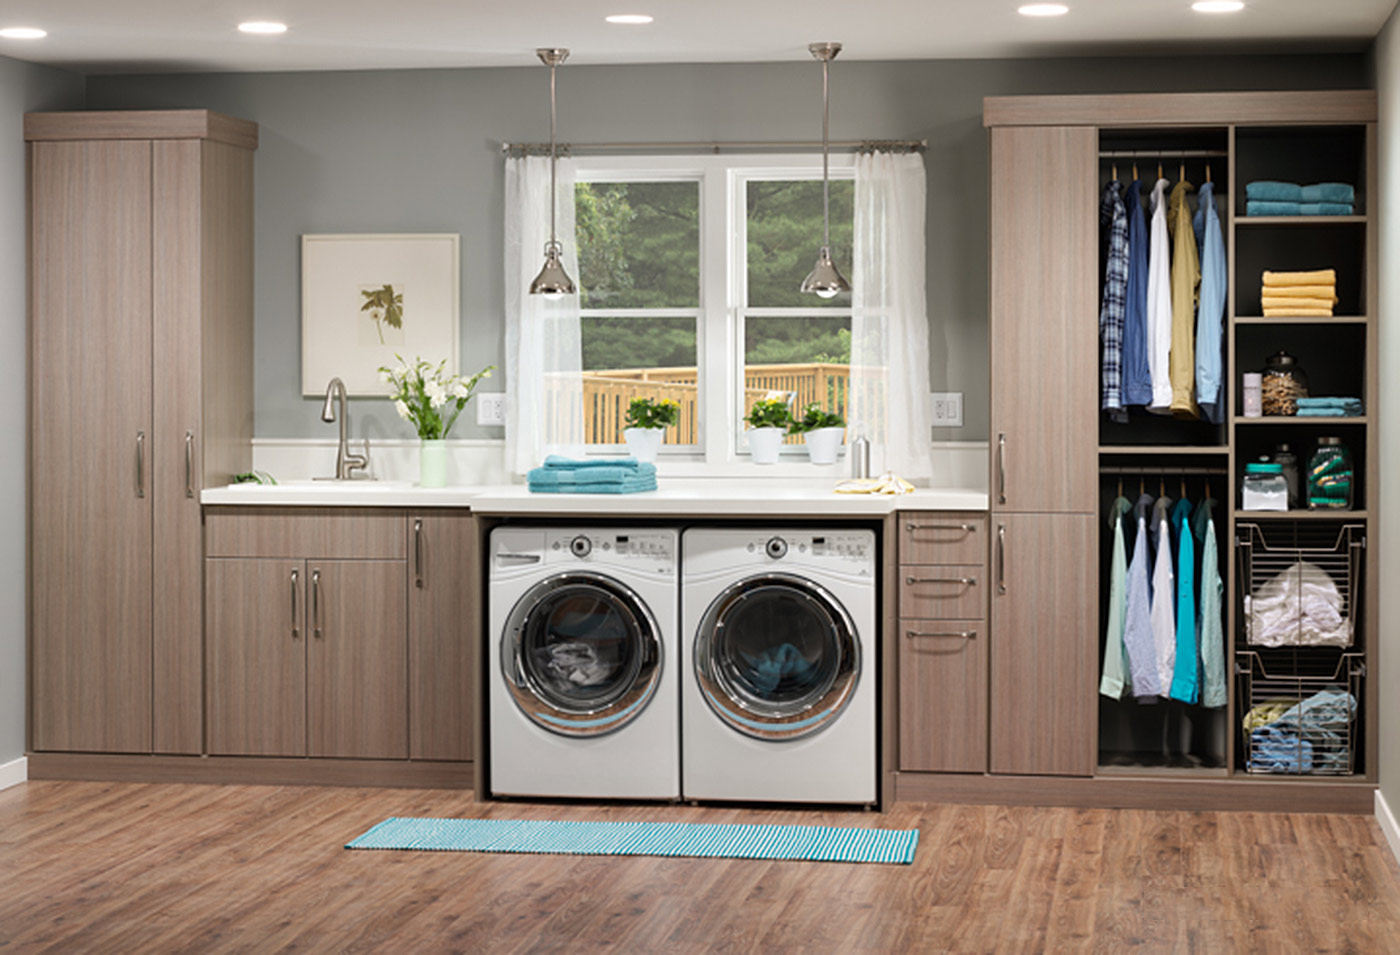 Laundry room cabinet accessories innovate home org Laundry room storage